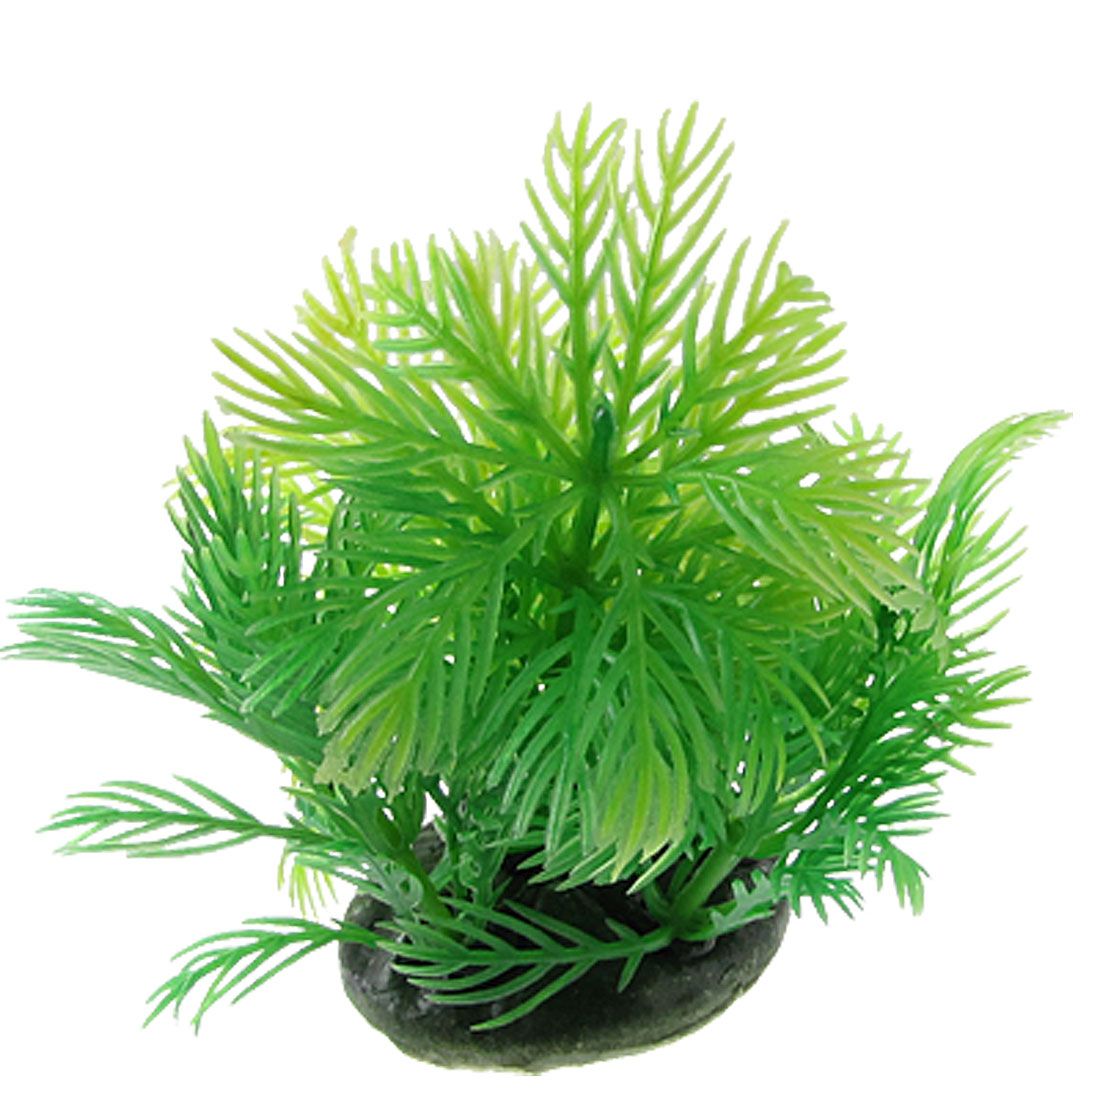 Green Plastic Plants Aquascaping Ornament for Aquarium Fish Tank